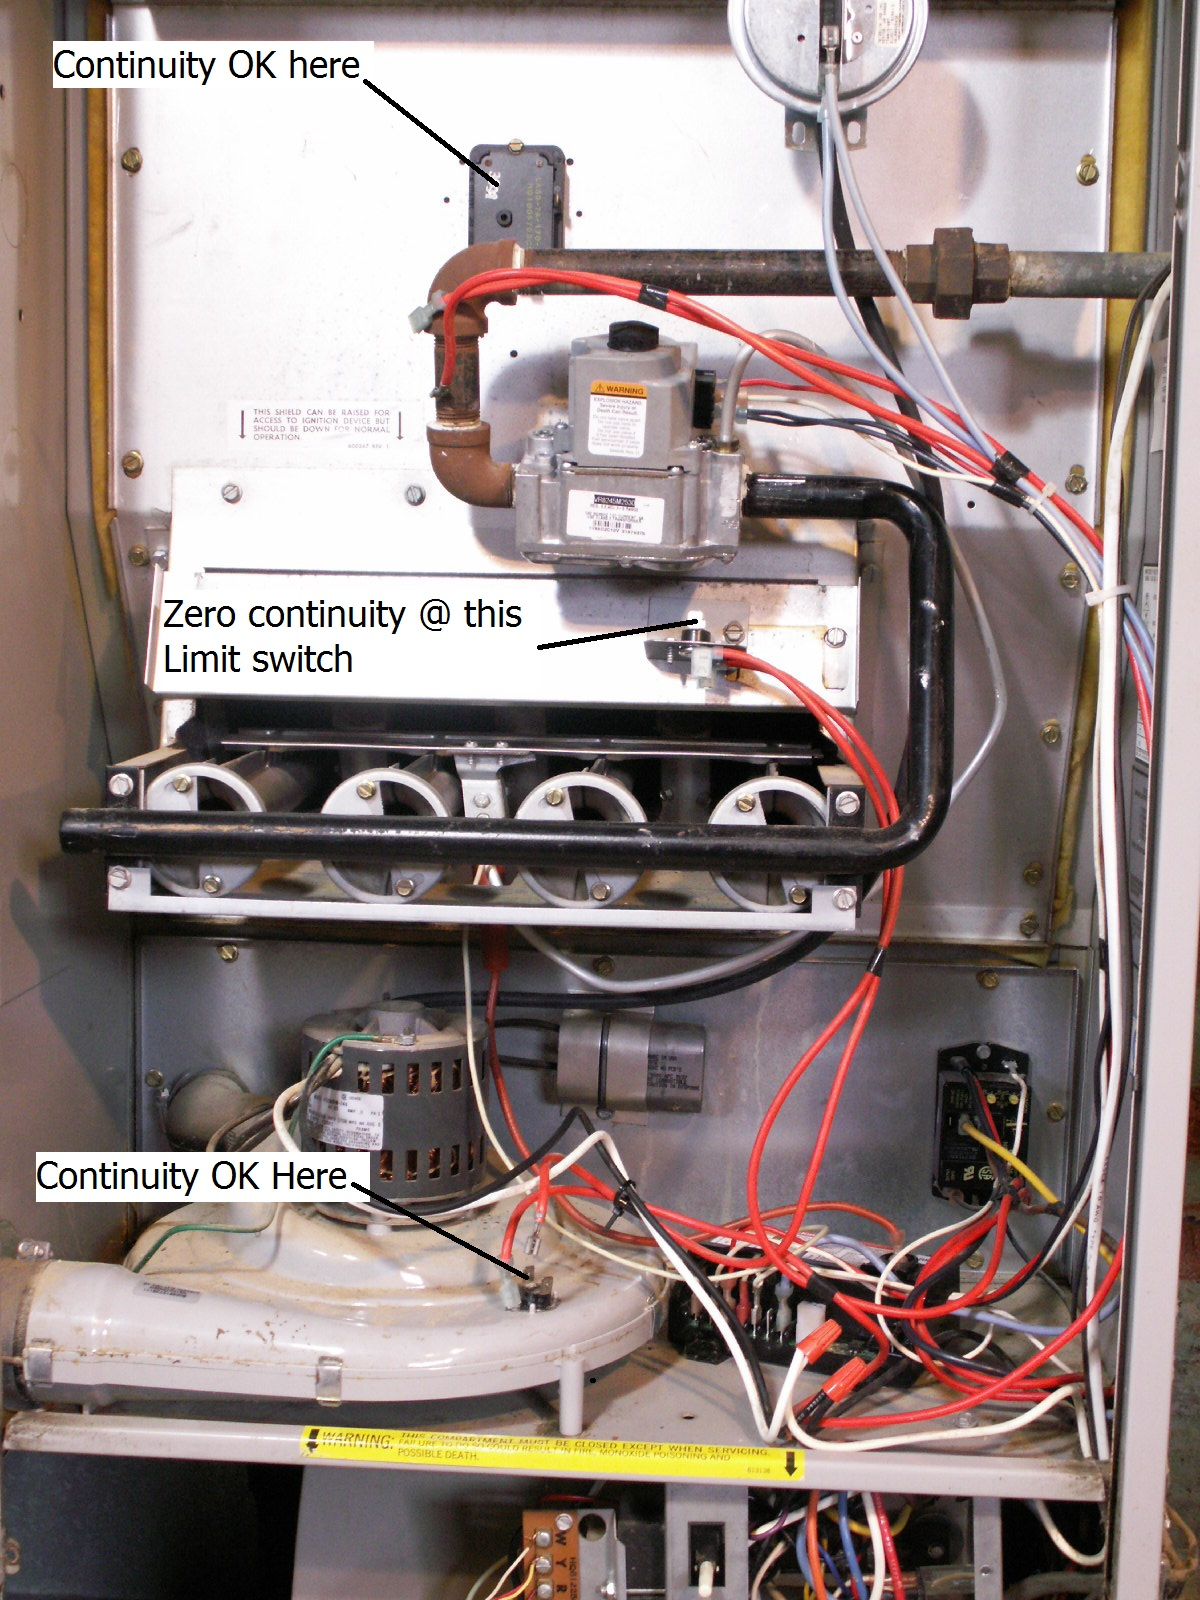 Also, when I jumper the wires that connect to the burner roll out (see  photo #1) the blower motor stops. HVAC Technician: servtech50